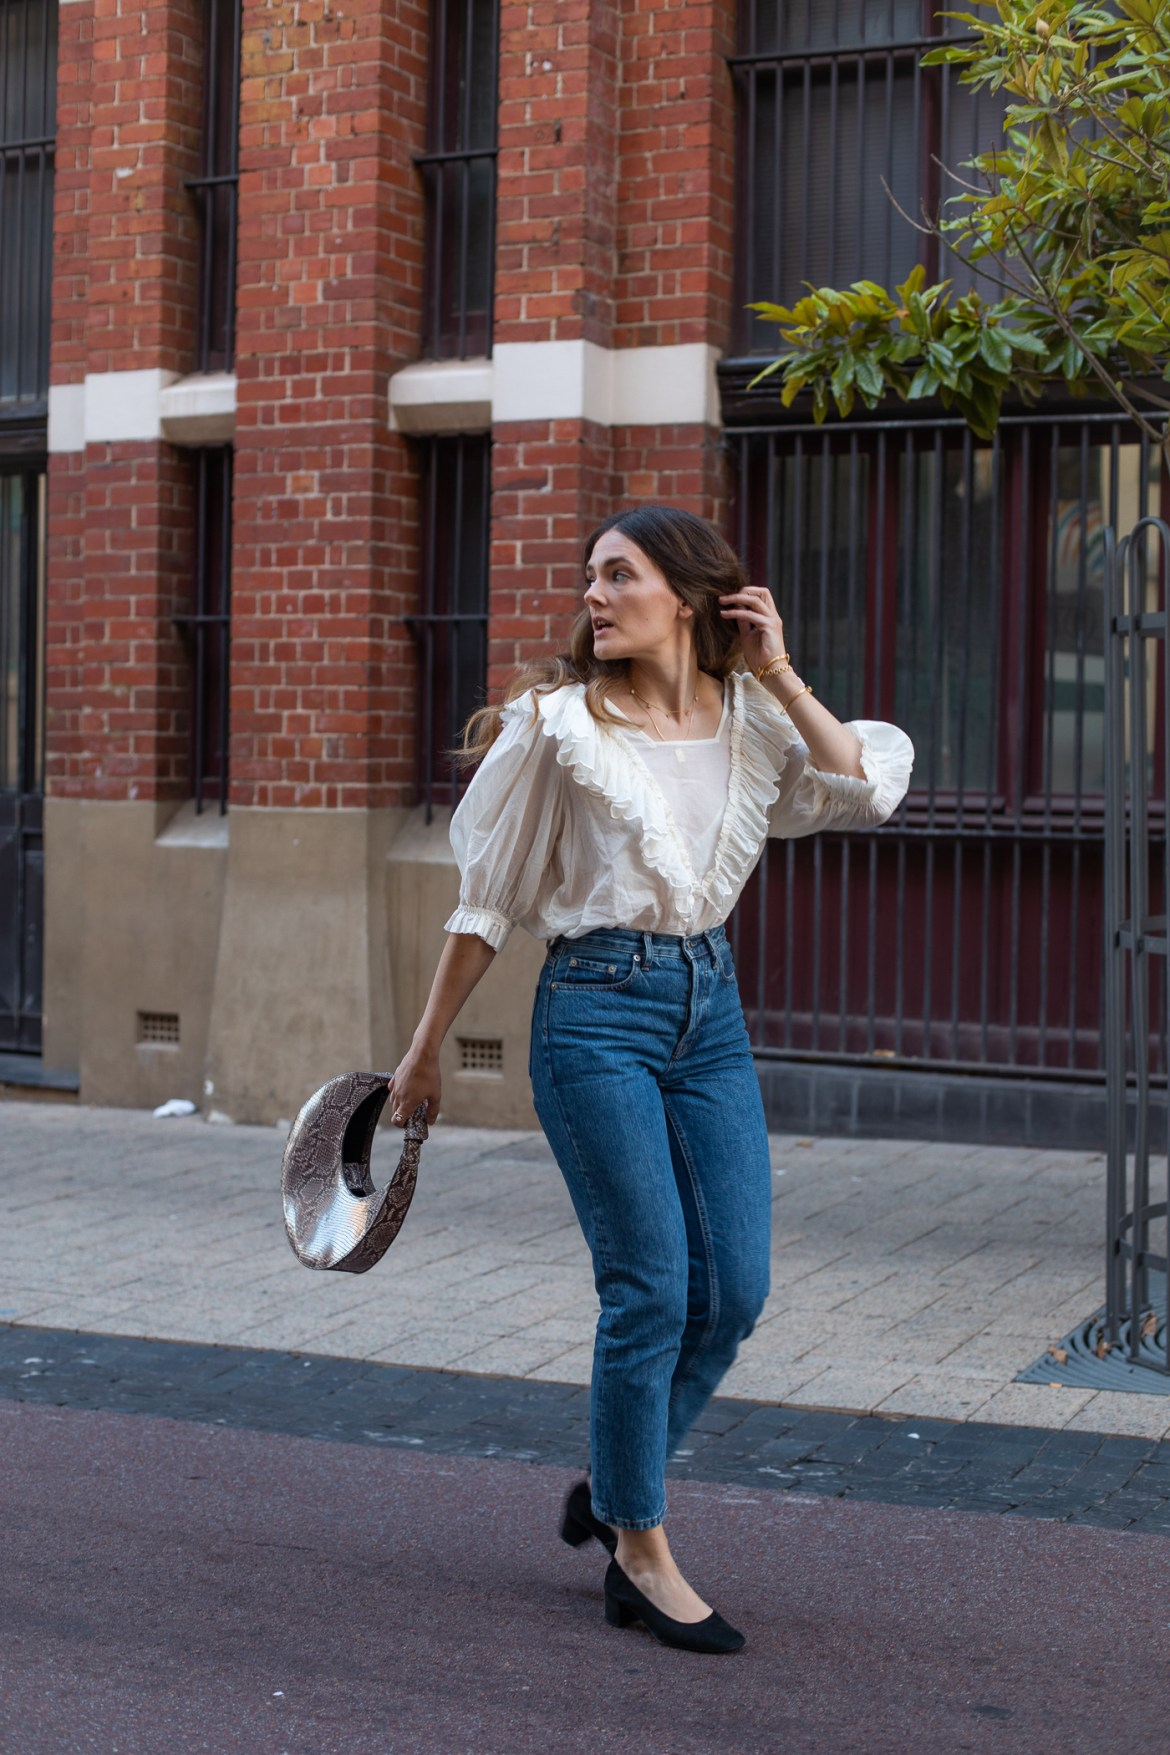 Street style blogger from Australia Jenelle Witty from the blog Inspiring Wit